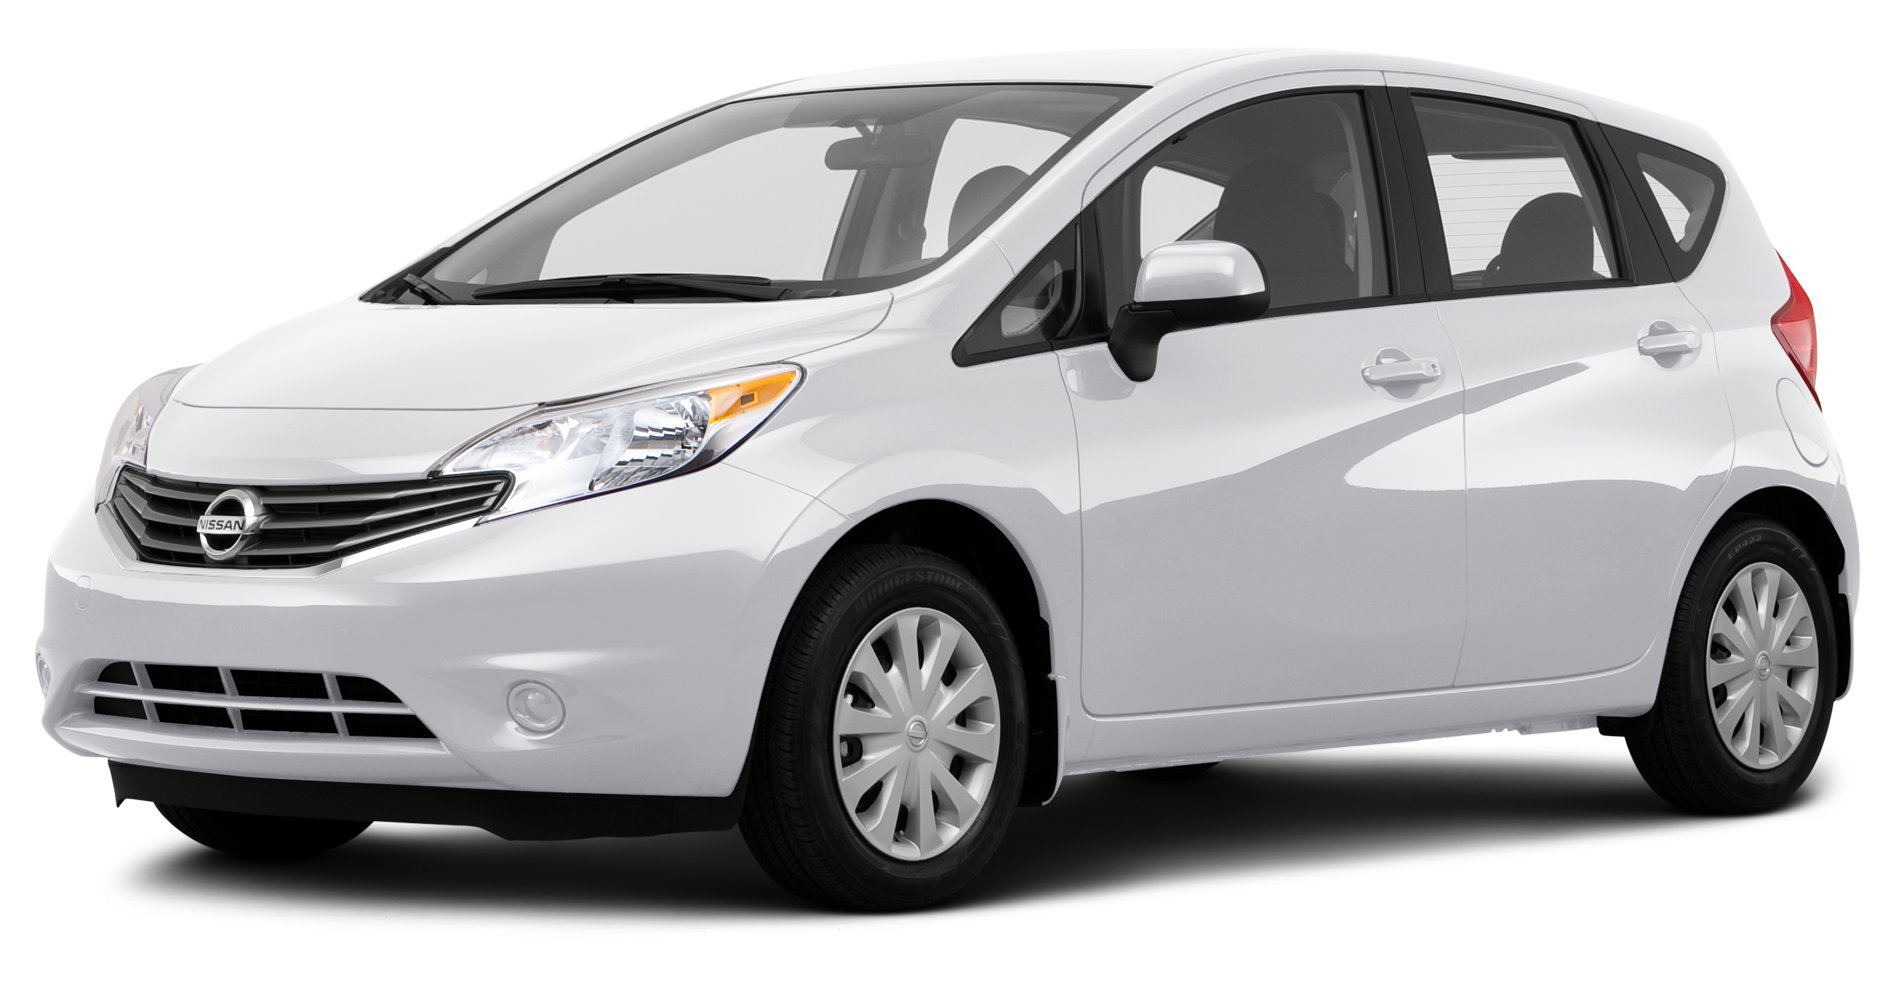 ... 2014 Nissan Versa Note S Plus, 5-Door Hatchback CVT 1.6 ...